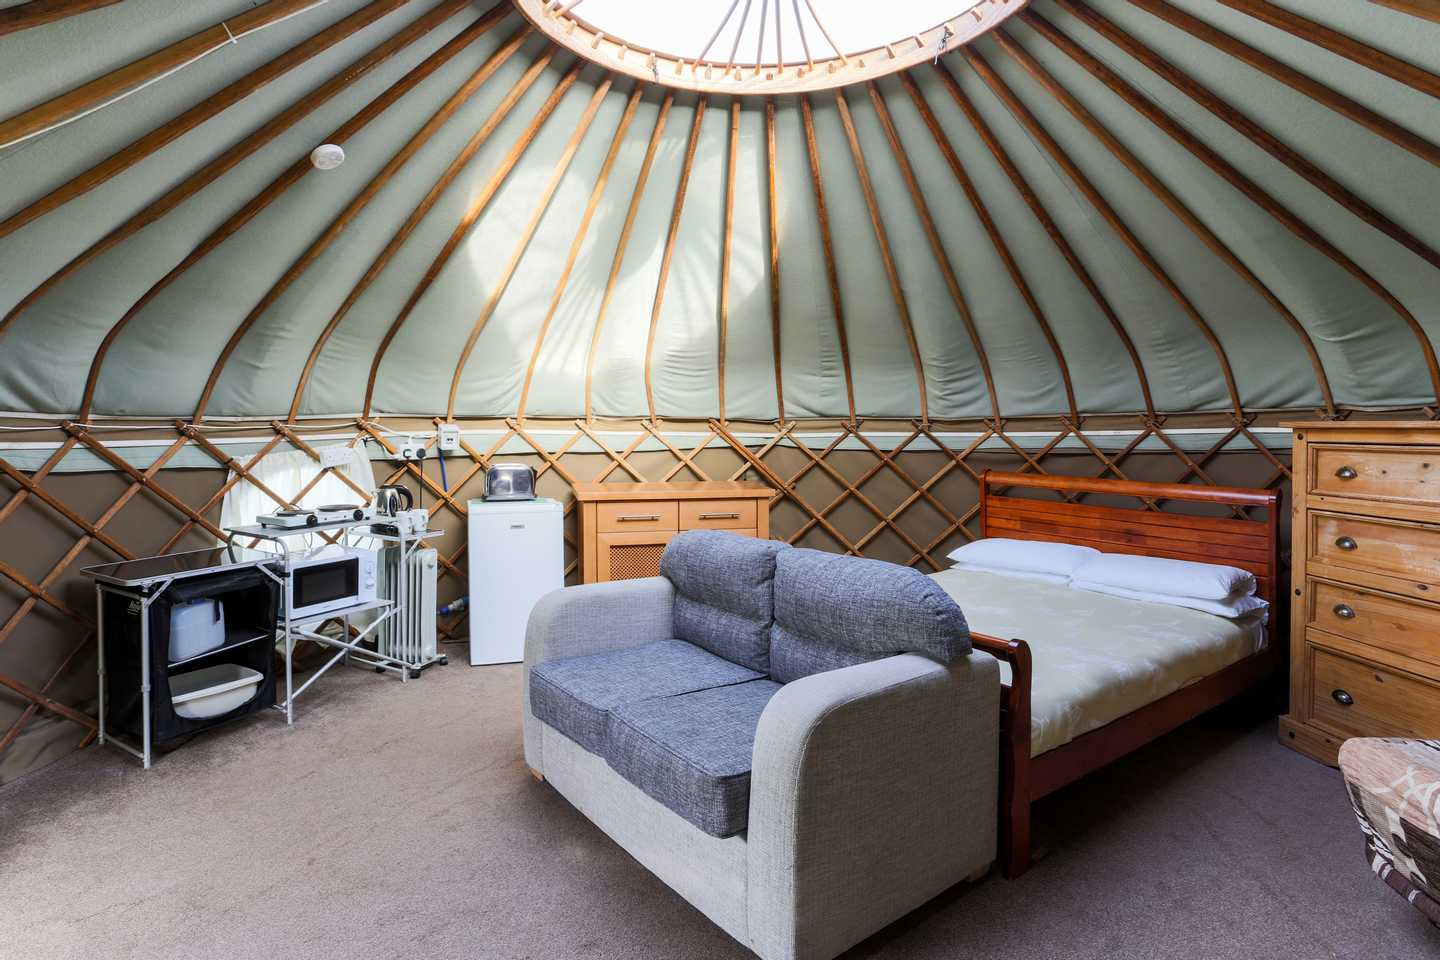 A Yurt with a double bed, sofa and kitchen appliances